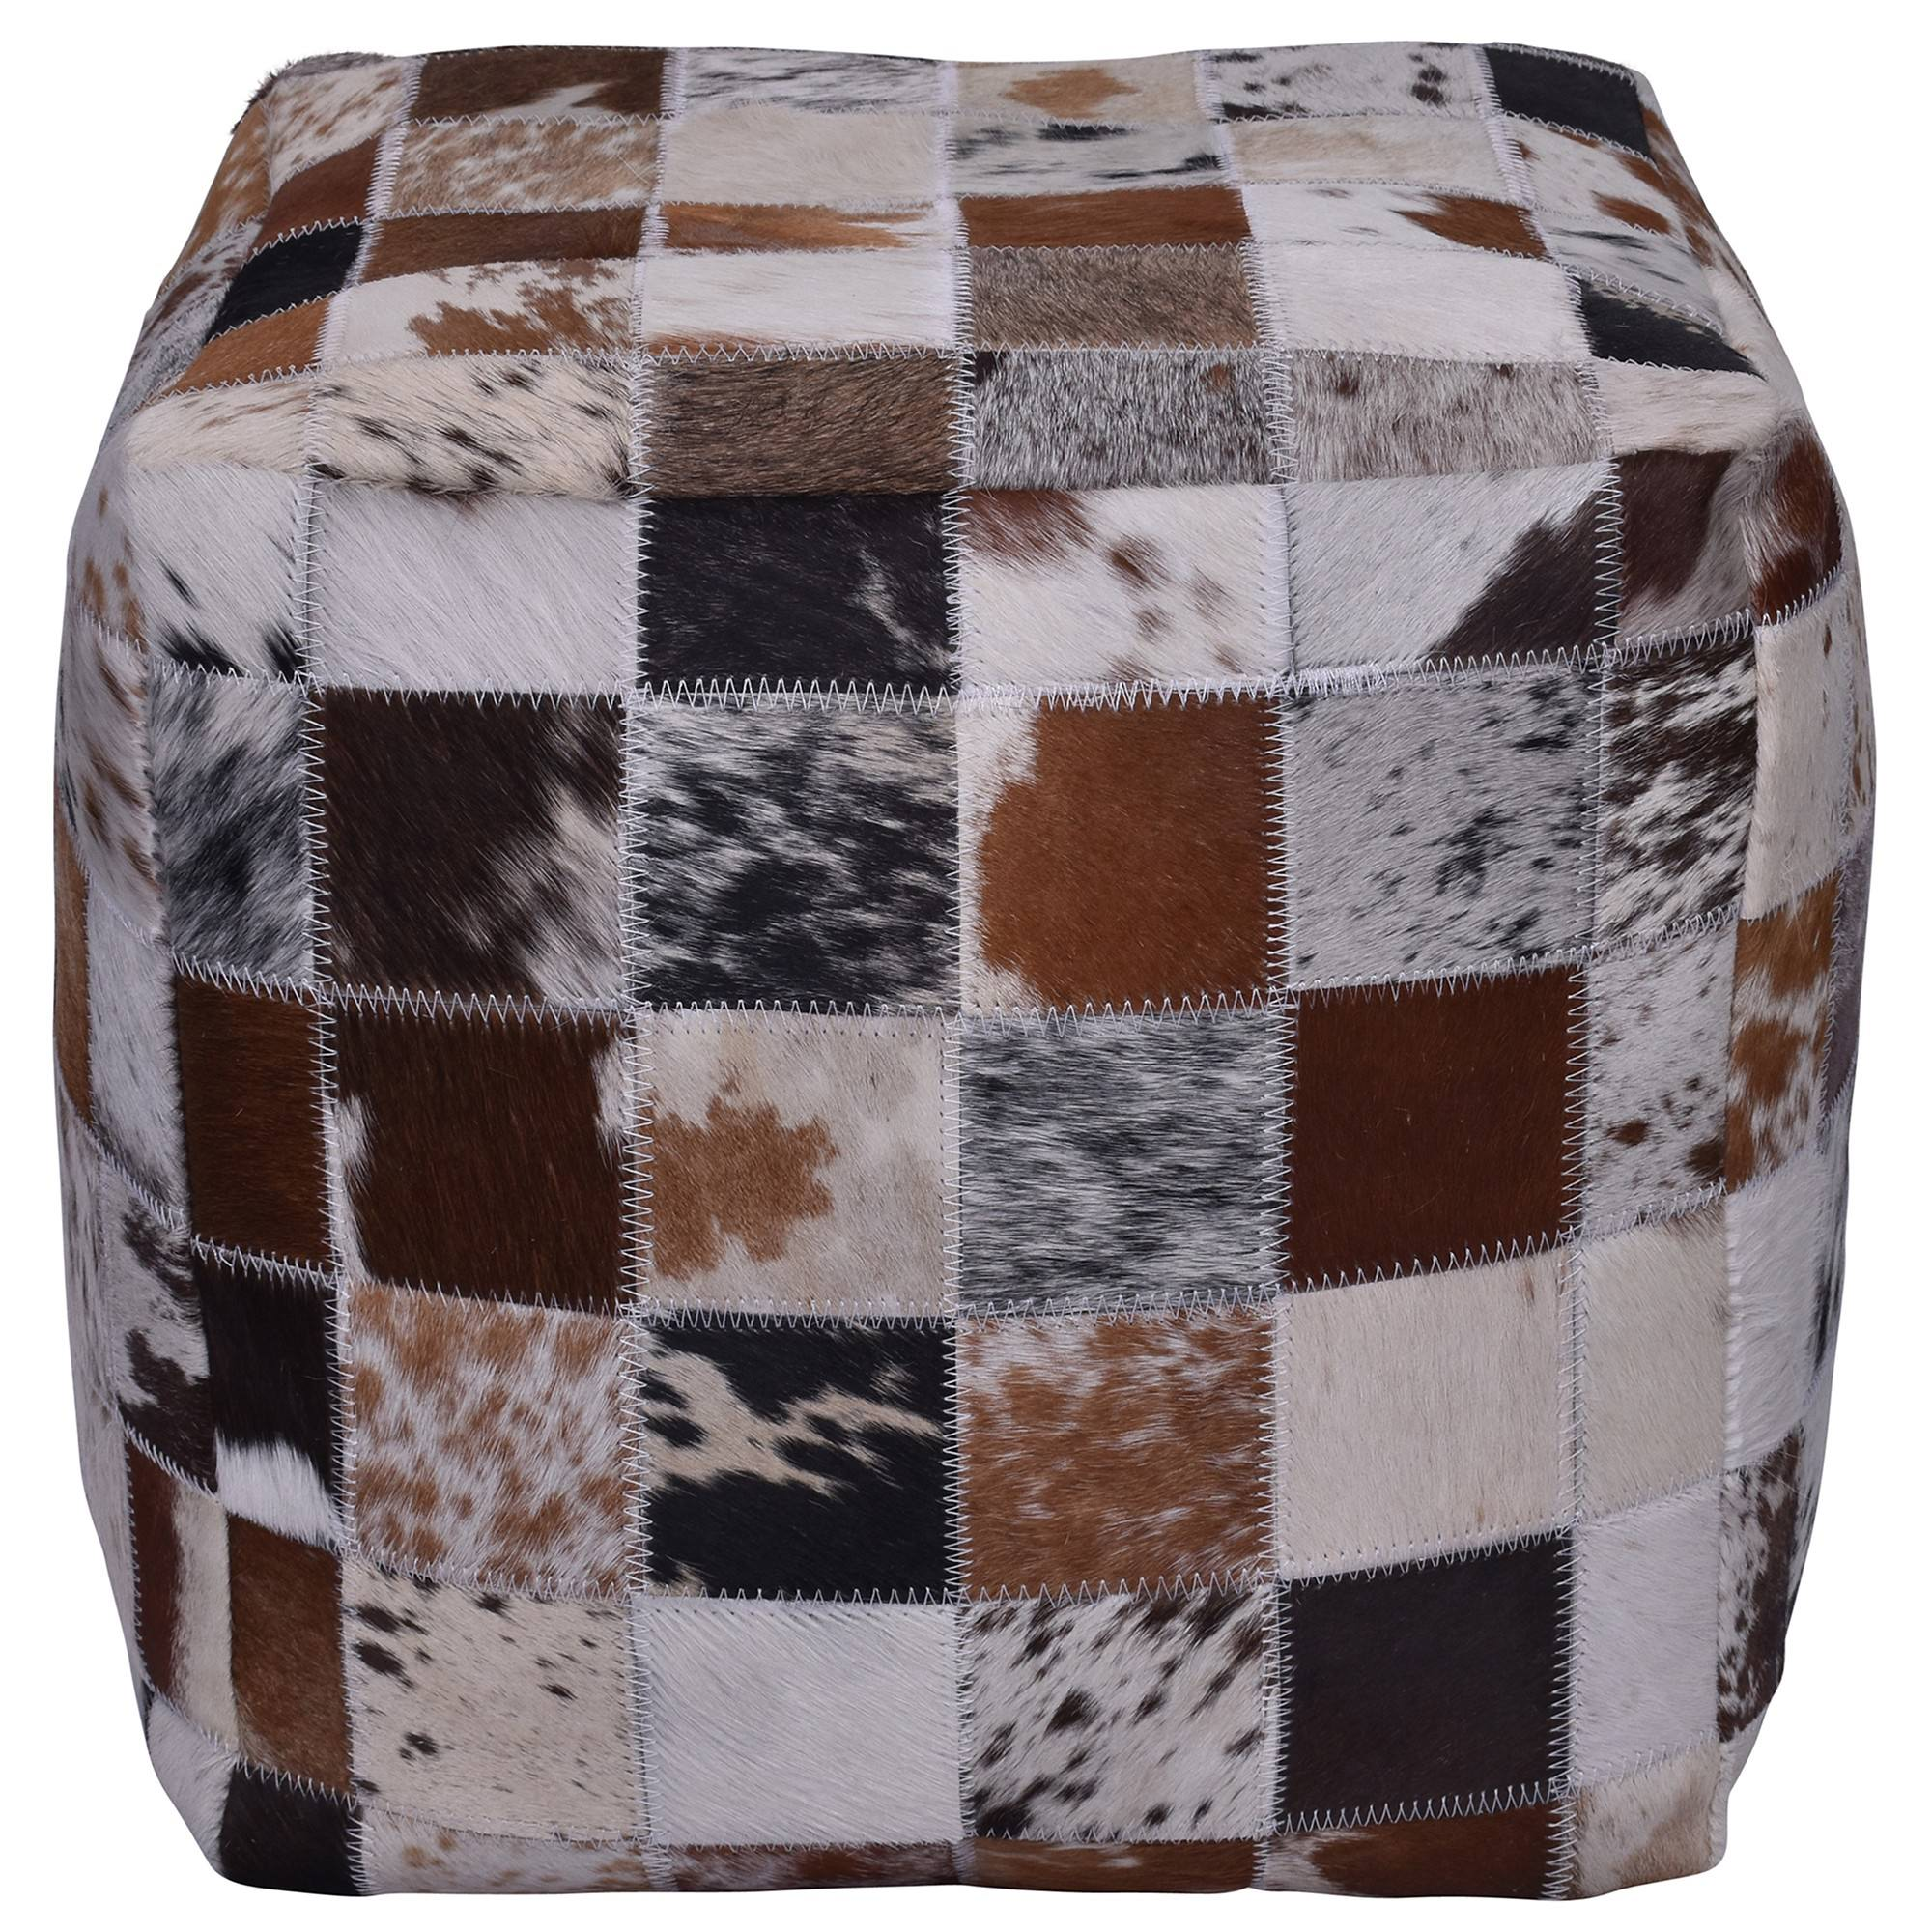 Morley Cowhide Patchwork Square Pouf